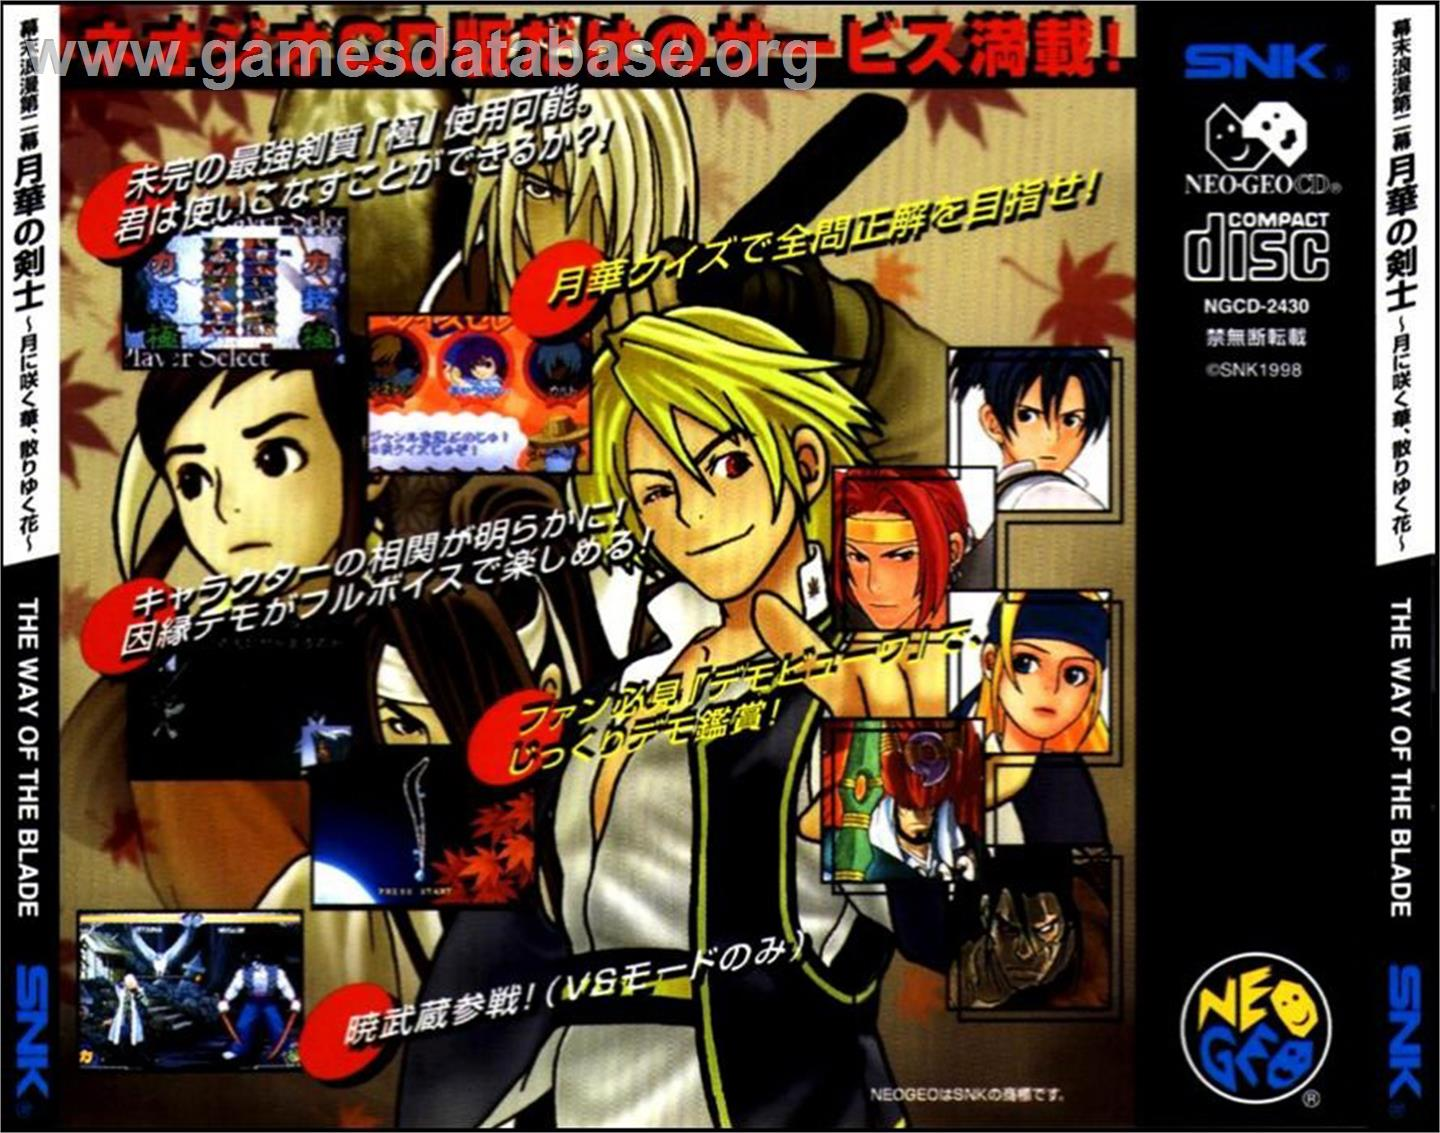 The_Last_Blade_2-_Heart_of_the_Samurai_-_1999_-_SNK_Corporation.jpg